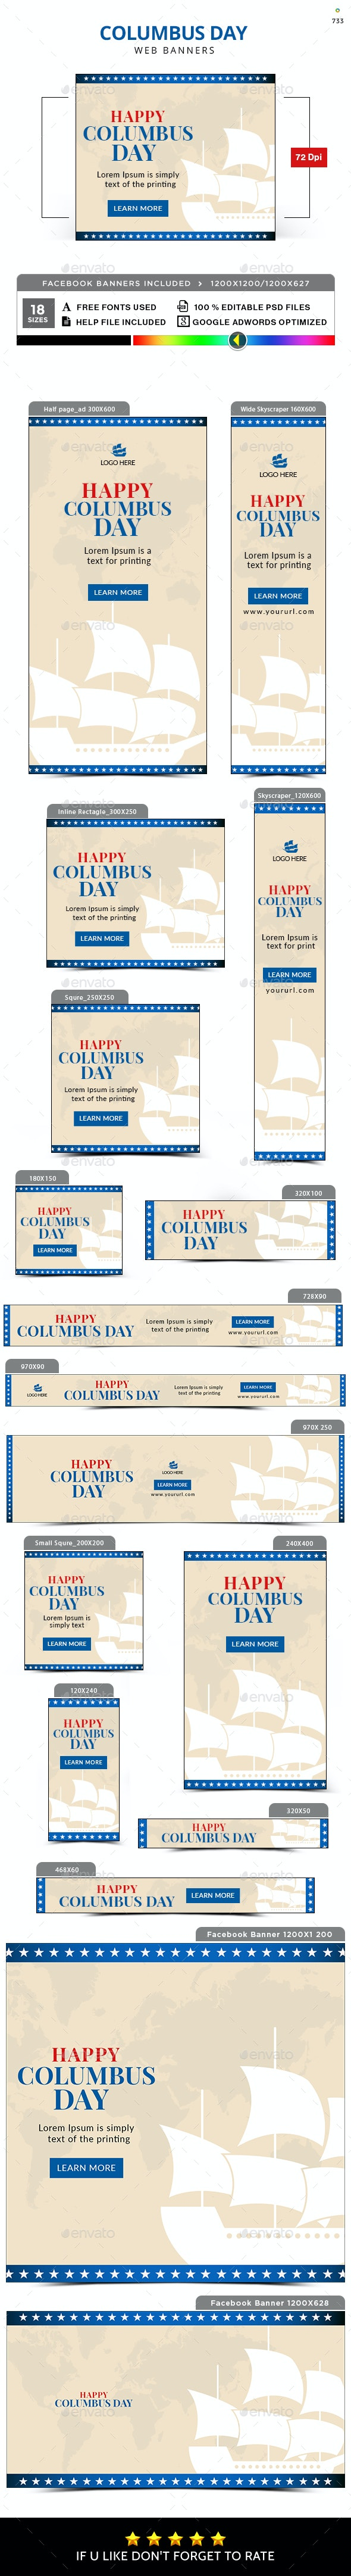 Columbus Day Banners - Banners & Ads Web Elements